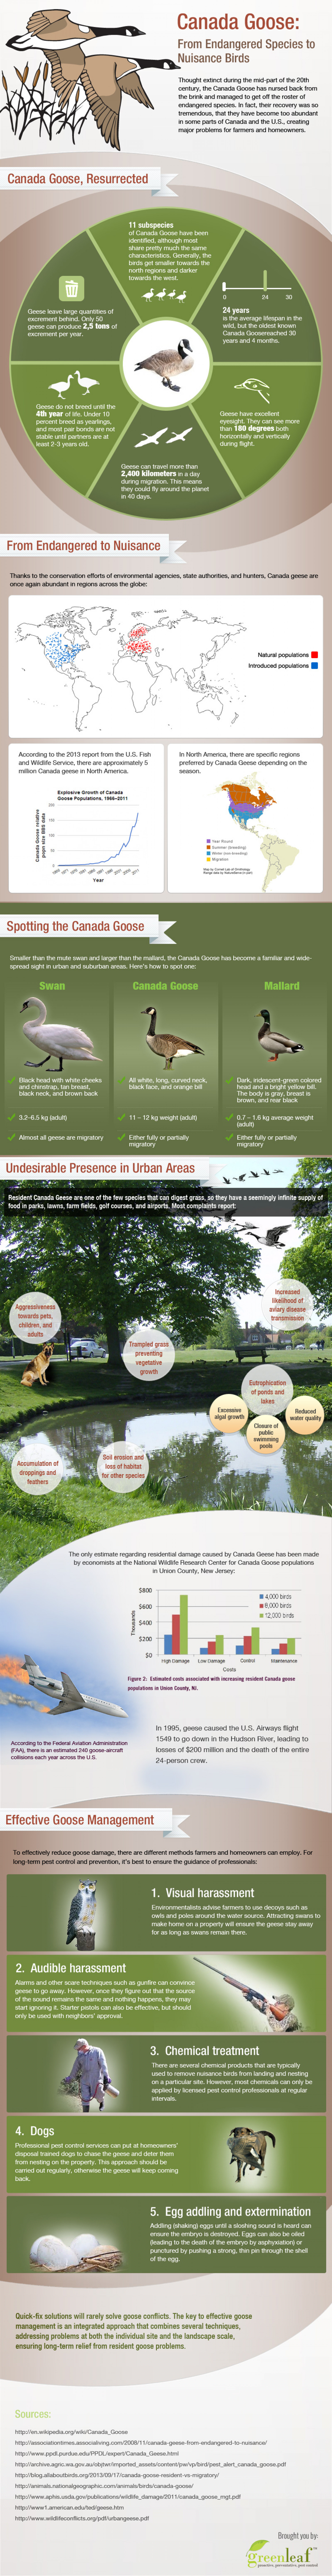 Canada Goose: From Endangered Species to Nuisance Birds Infographic